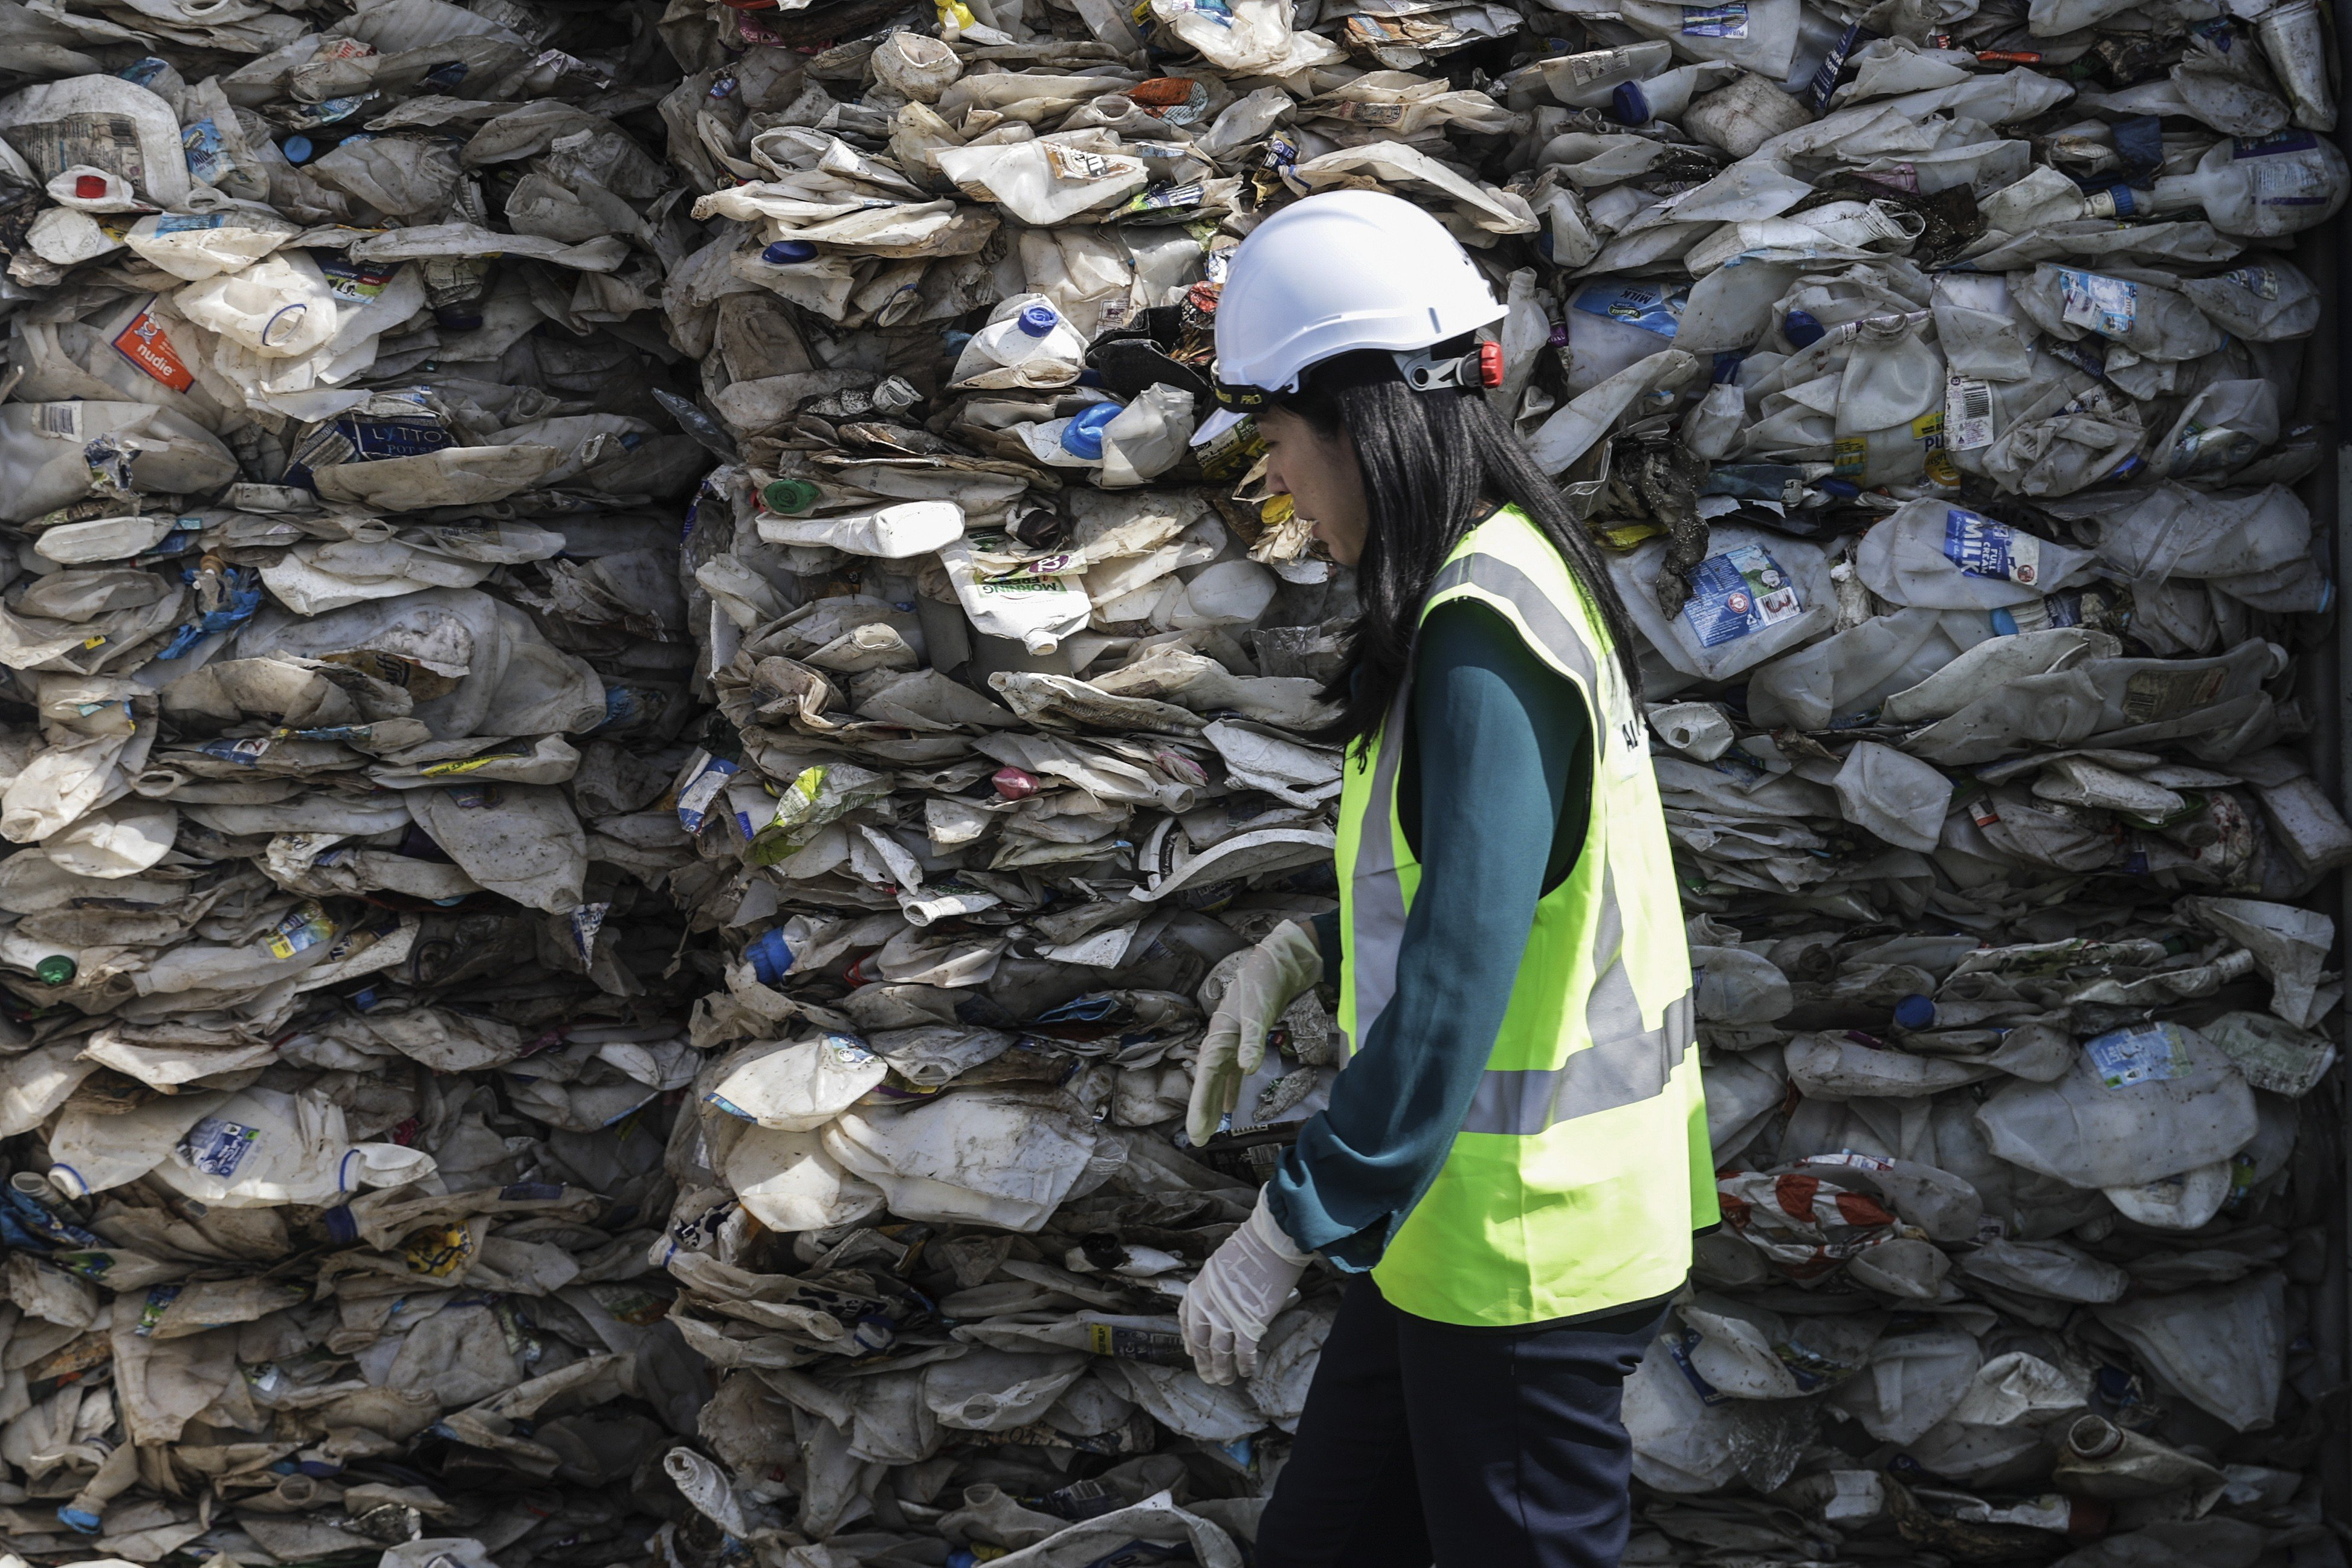 Malaysian minister Yeo Bee Yin blasts importers of illegal waste